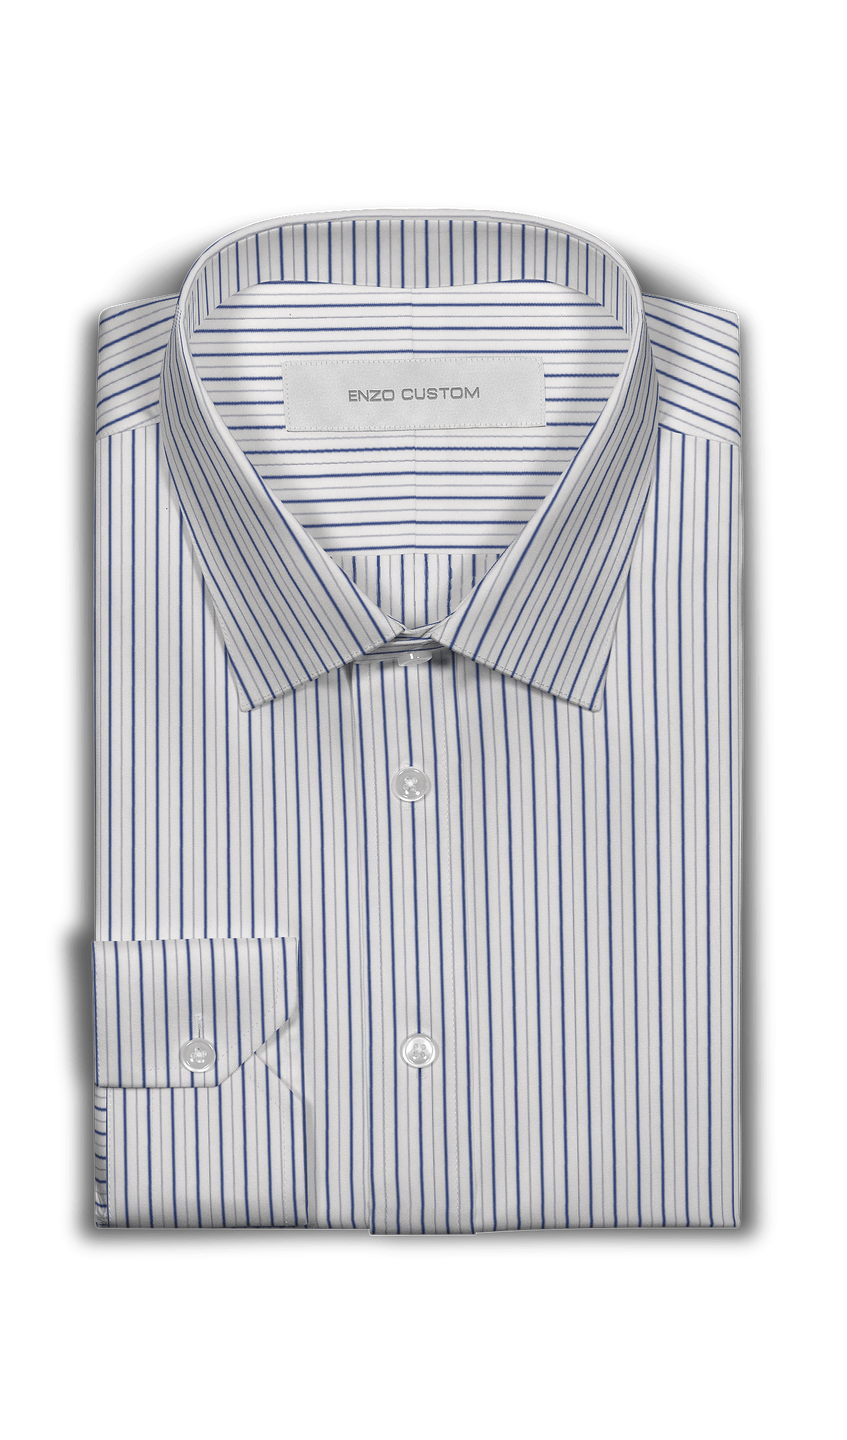 Signature Shirt White/Blue Striped Dress Shirt